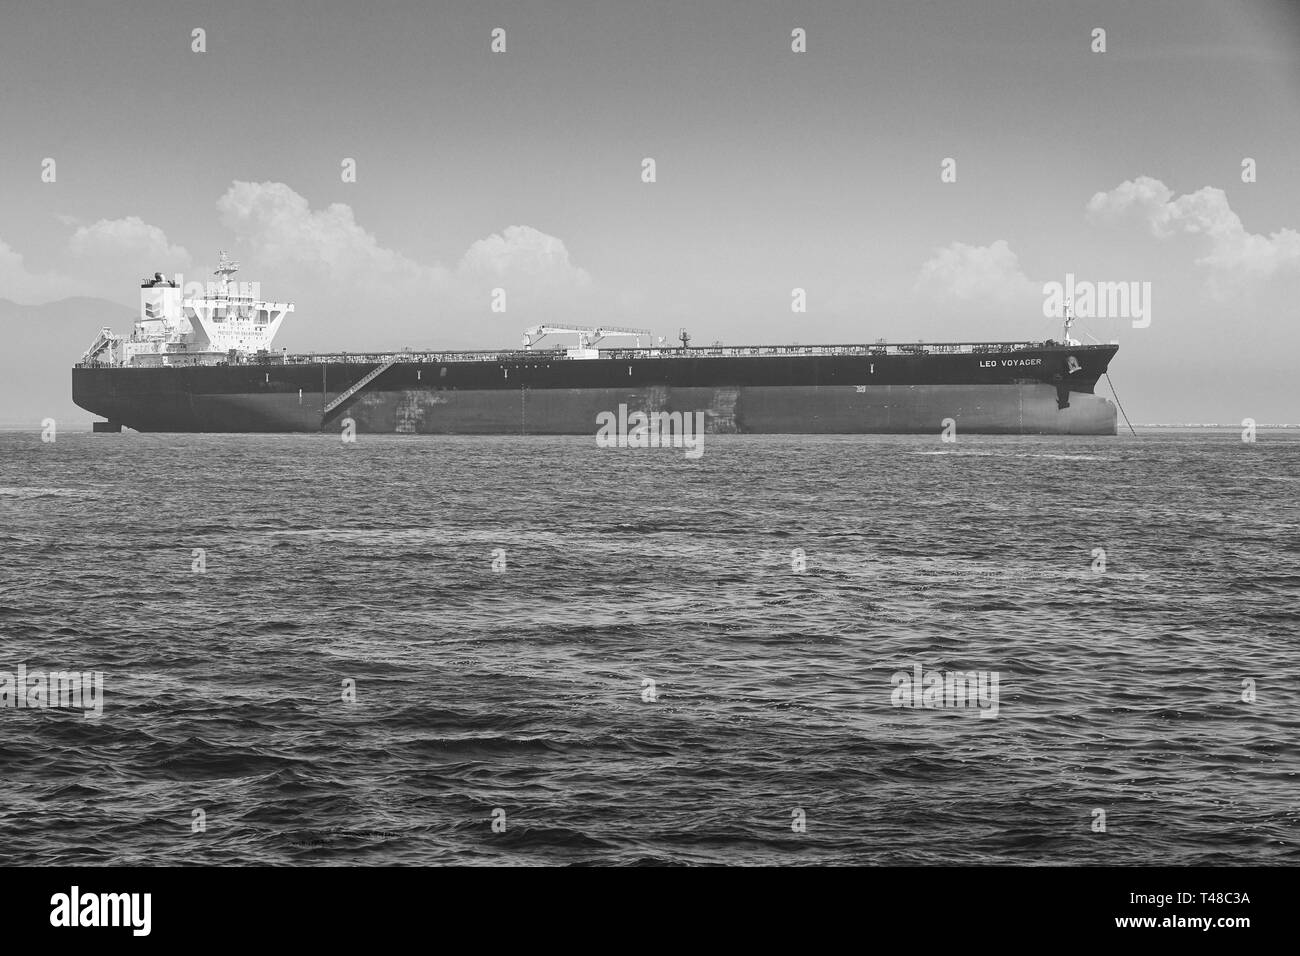 Black And White Photo Of The Giant CHEVERON Supertanker, LEO VOYAGER, In Ballast, Anchored In The Port Of Long Beach, California, USA. - Stock Image